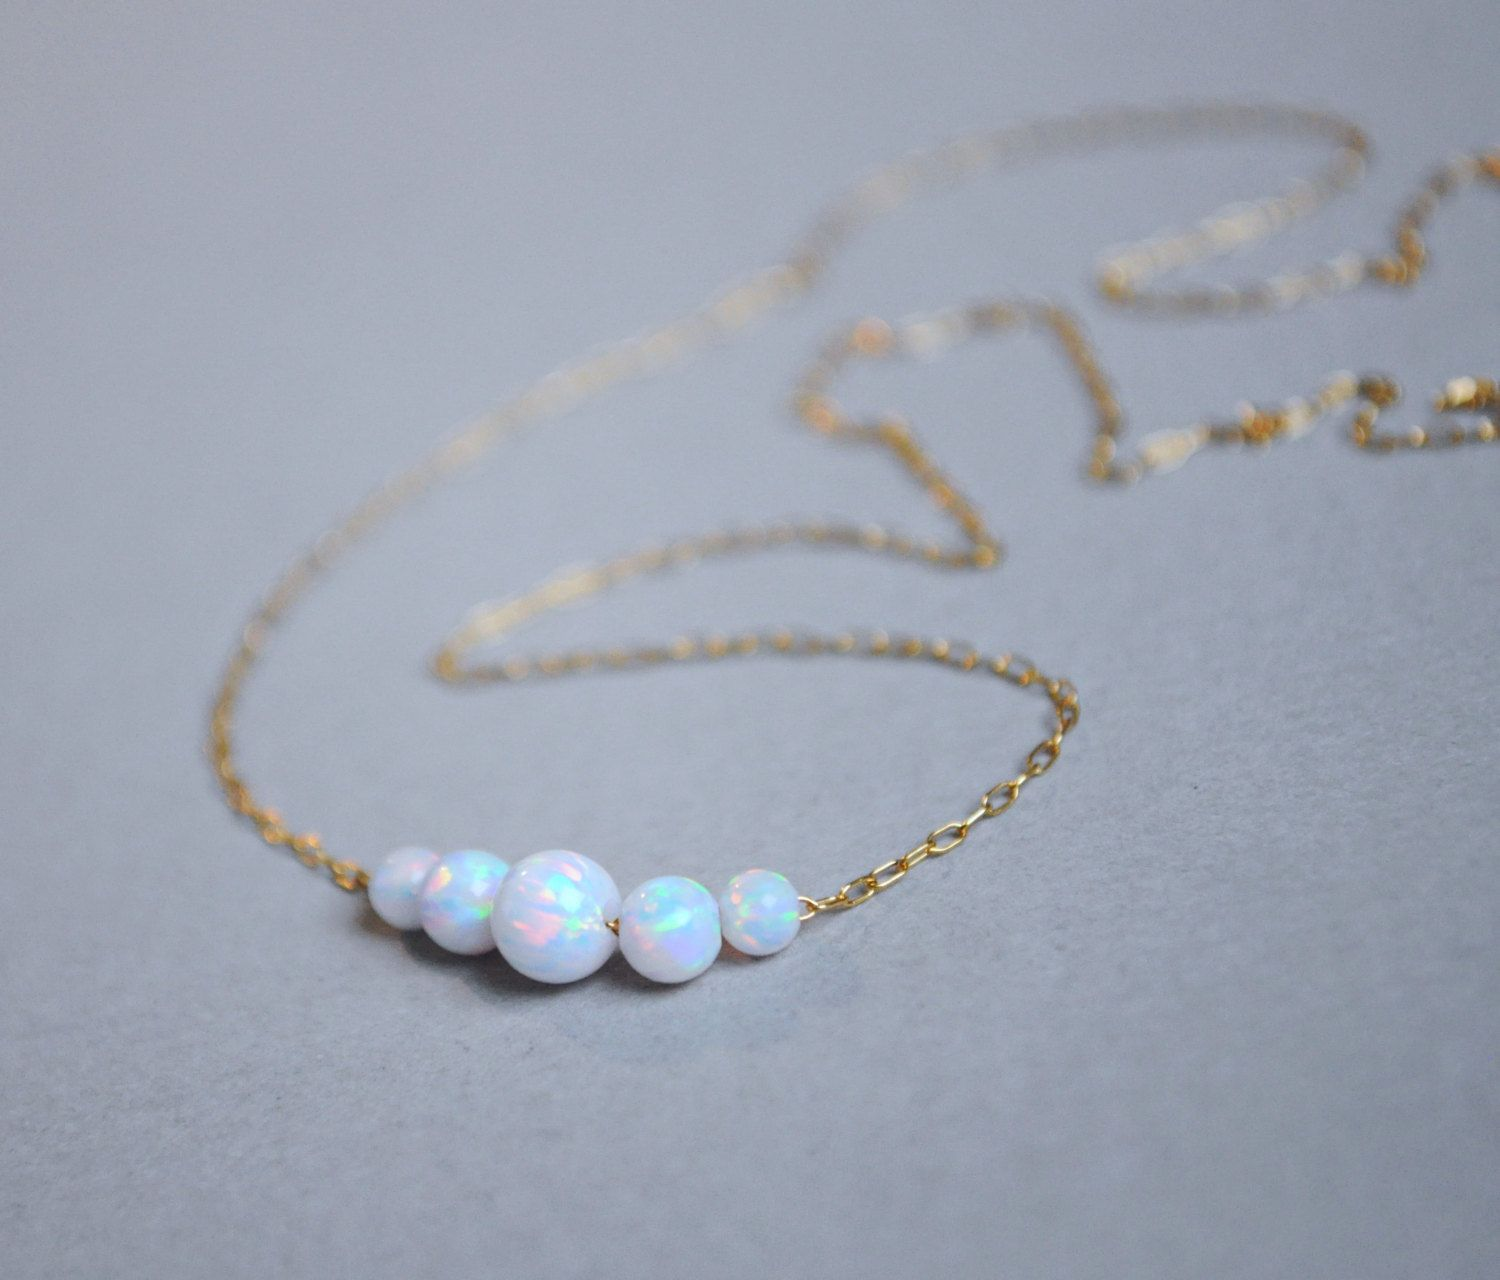 necklace belle qp drop in earrings opal gold and diamond white